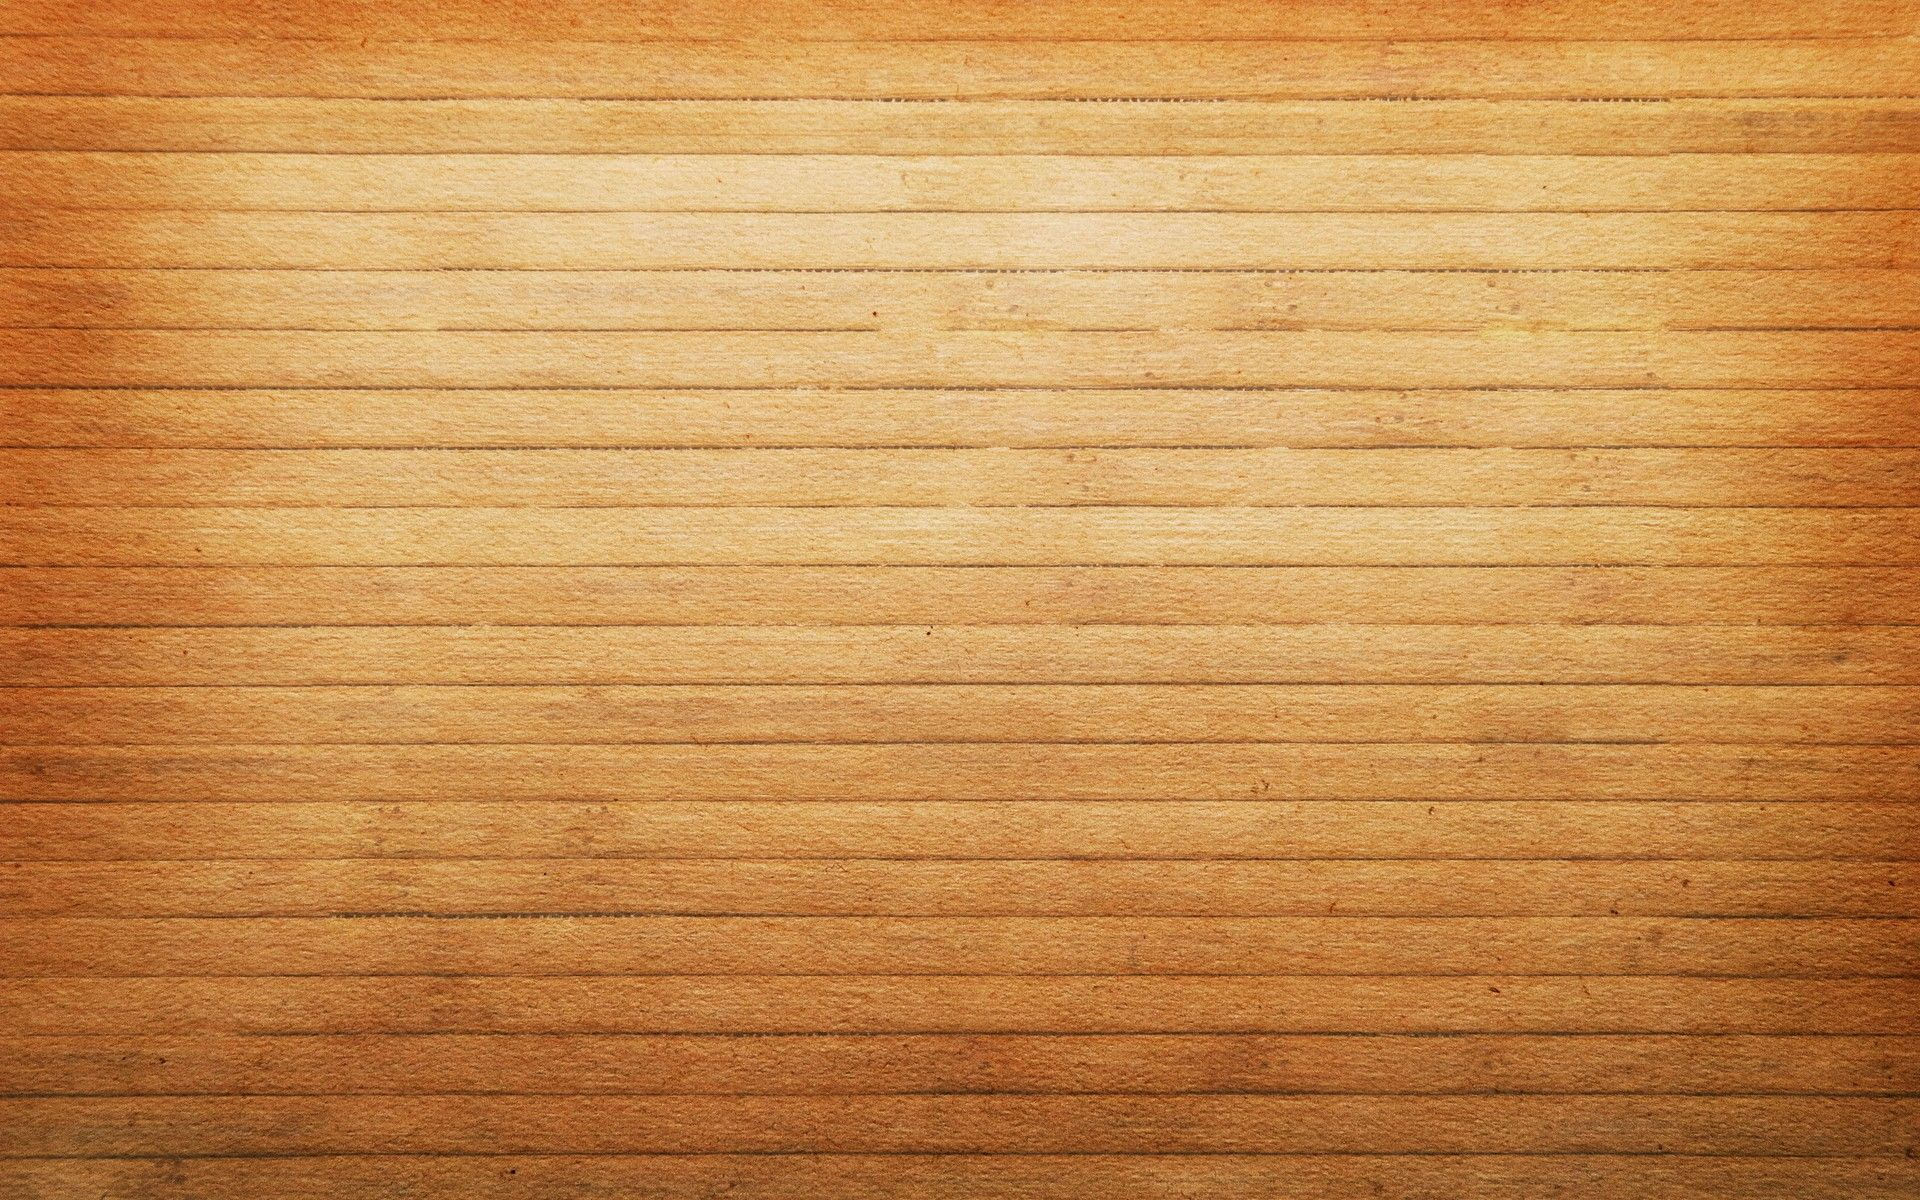 Wooden table background pattern - Wallpaper Wood Wallpapers Wallpapers And Backgrounds